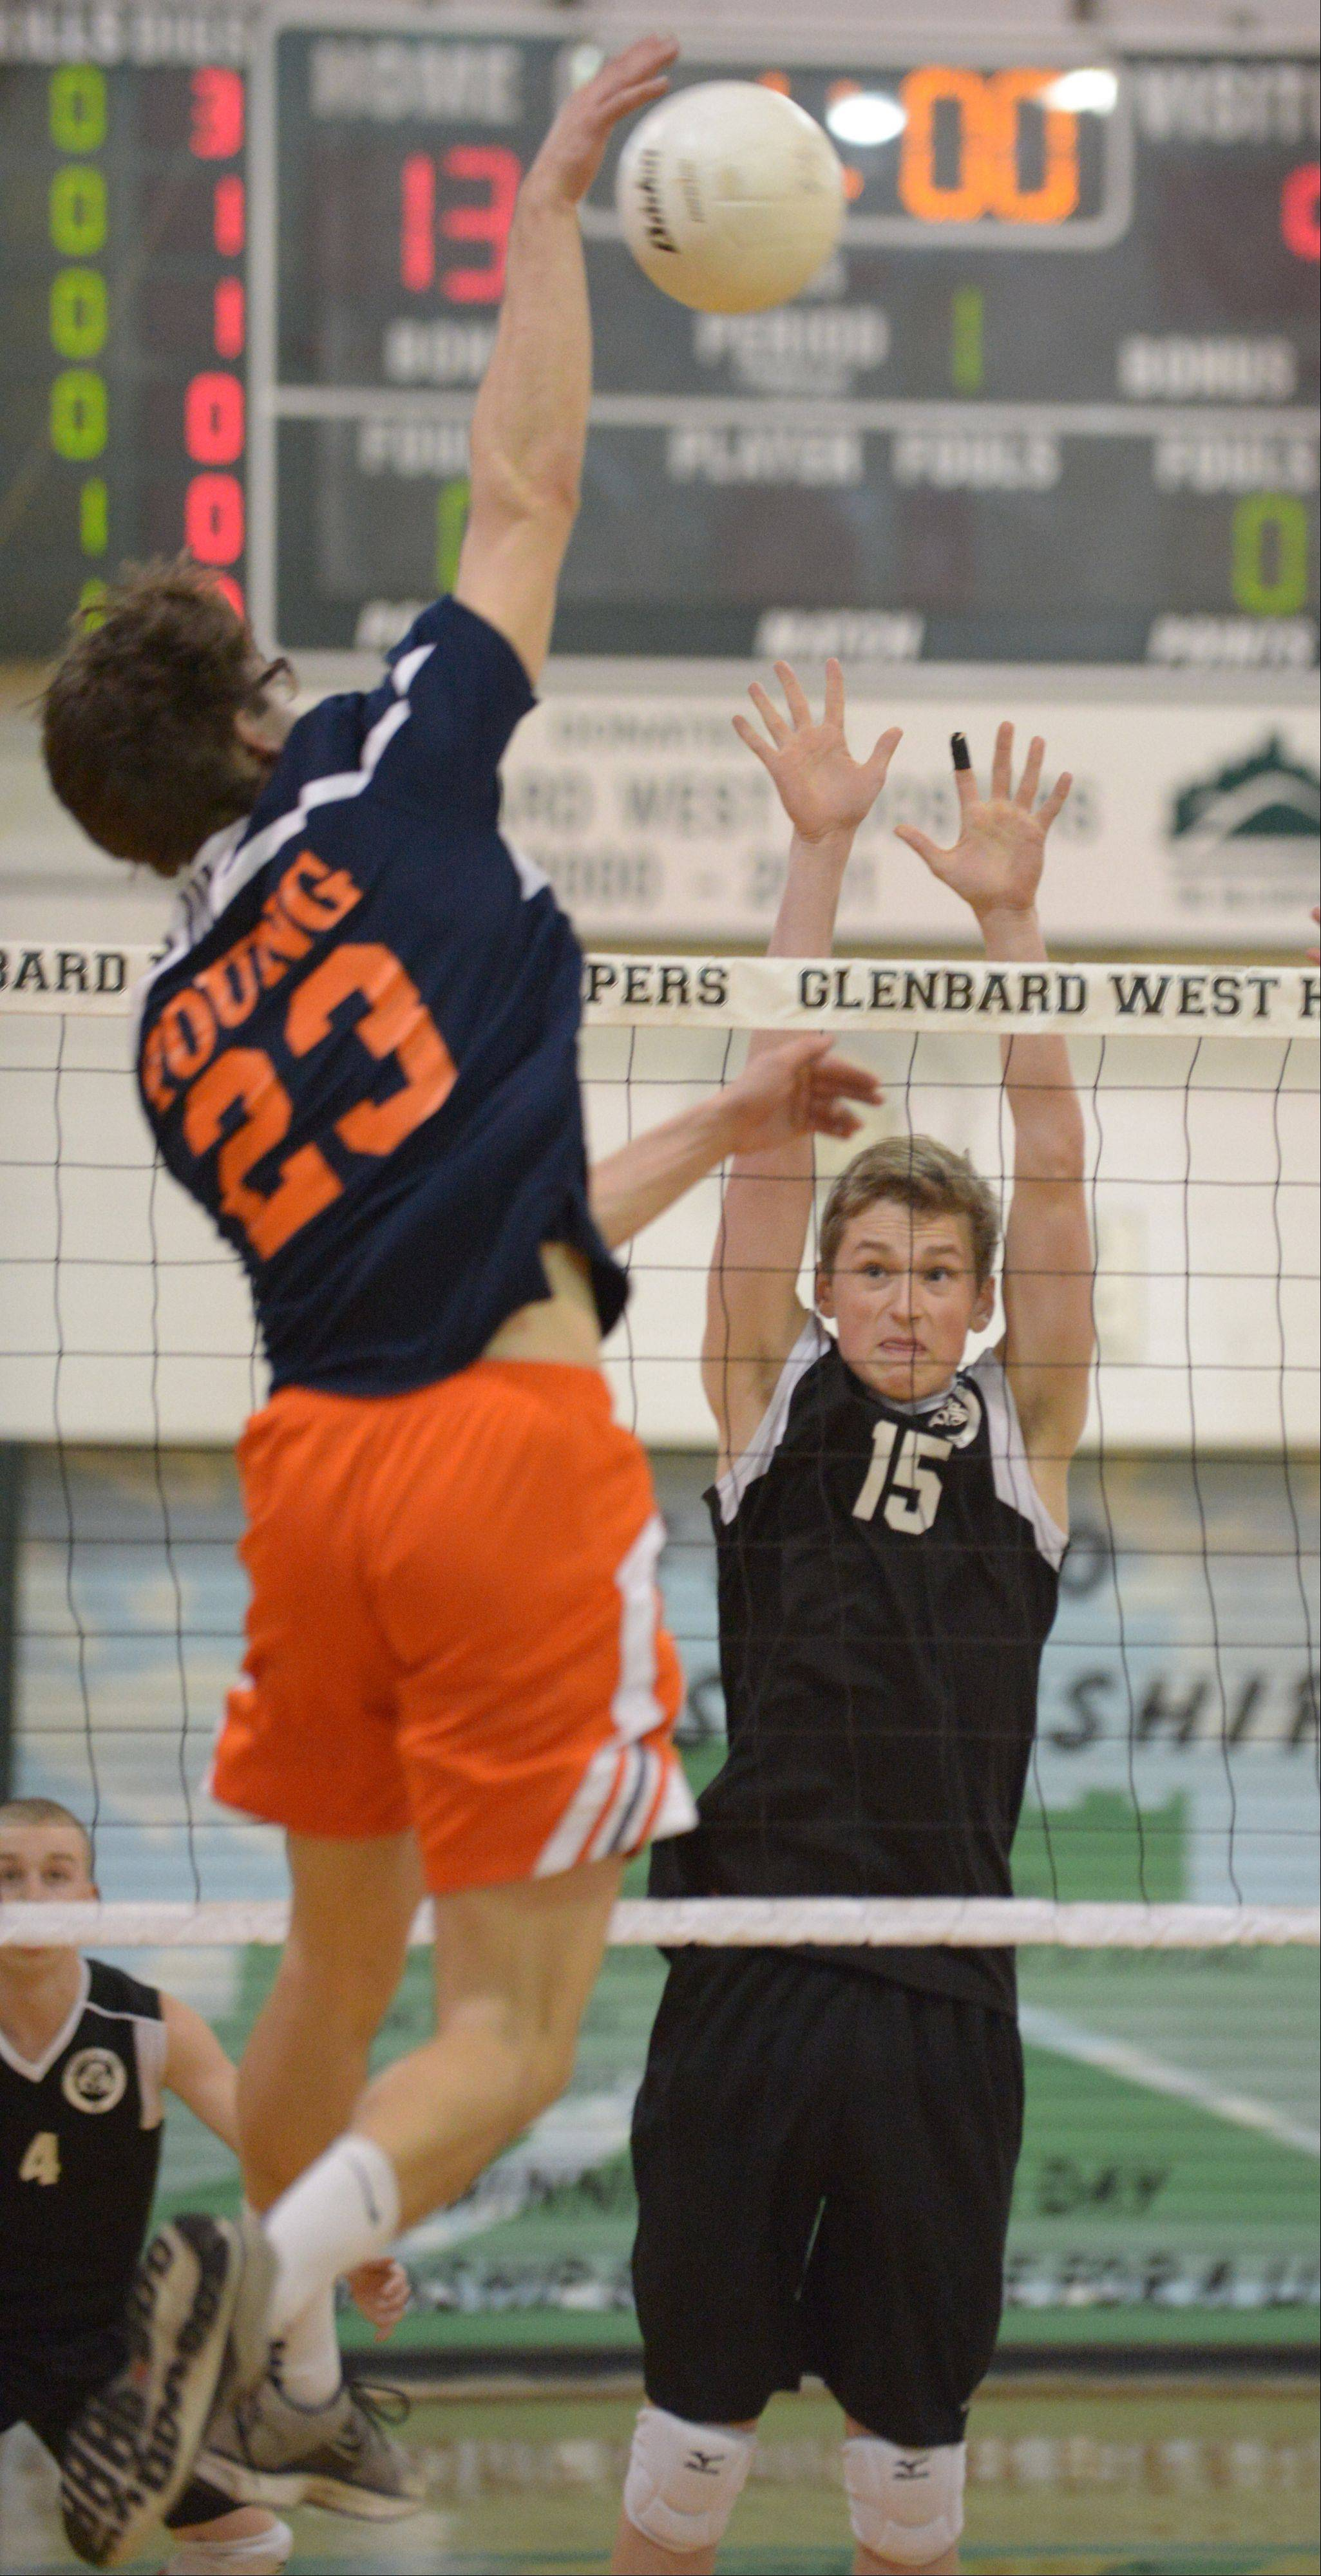 Jackson Nagle of Glenbard West gets ready to block a shot from Tom Wesolow of Whitney Young. This took place during the Whitney Young at Glenbard West boys volleyball game Thursday.